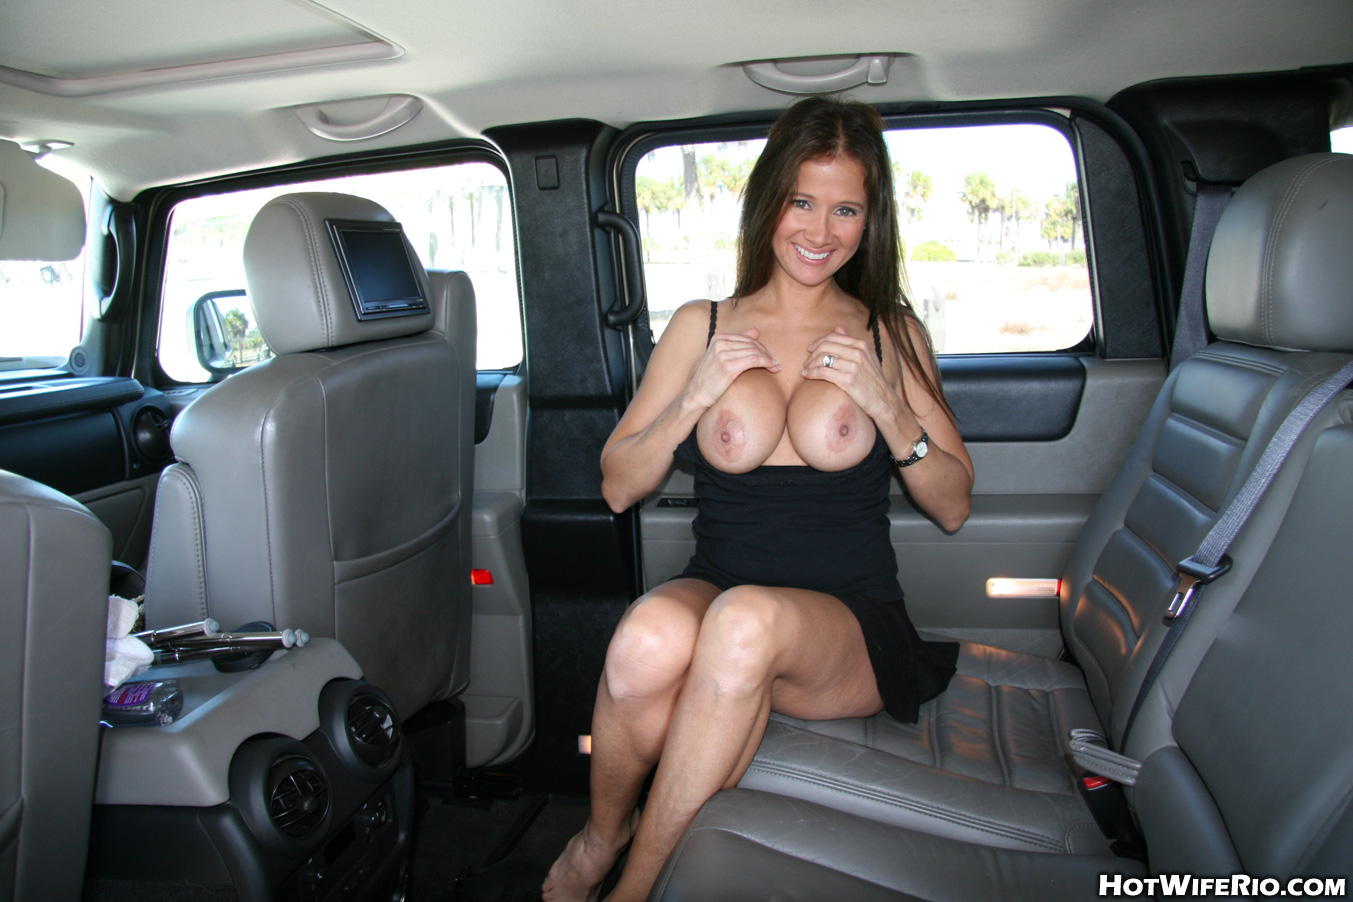 naughty brunette wife in black dress shows off her big tits and neat